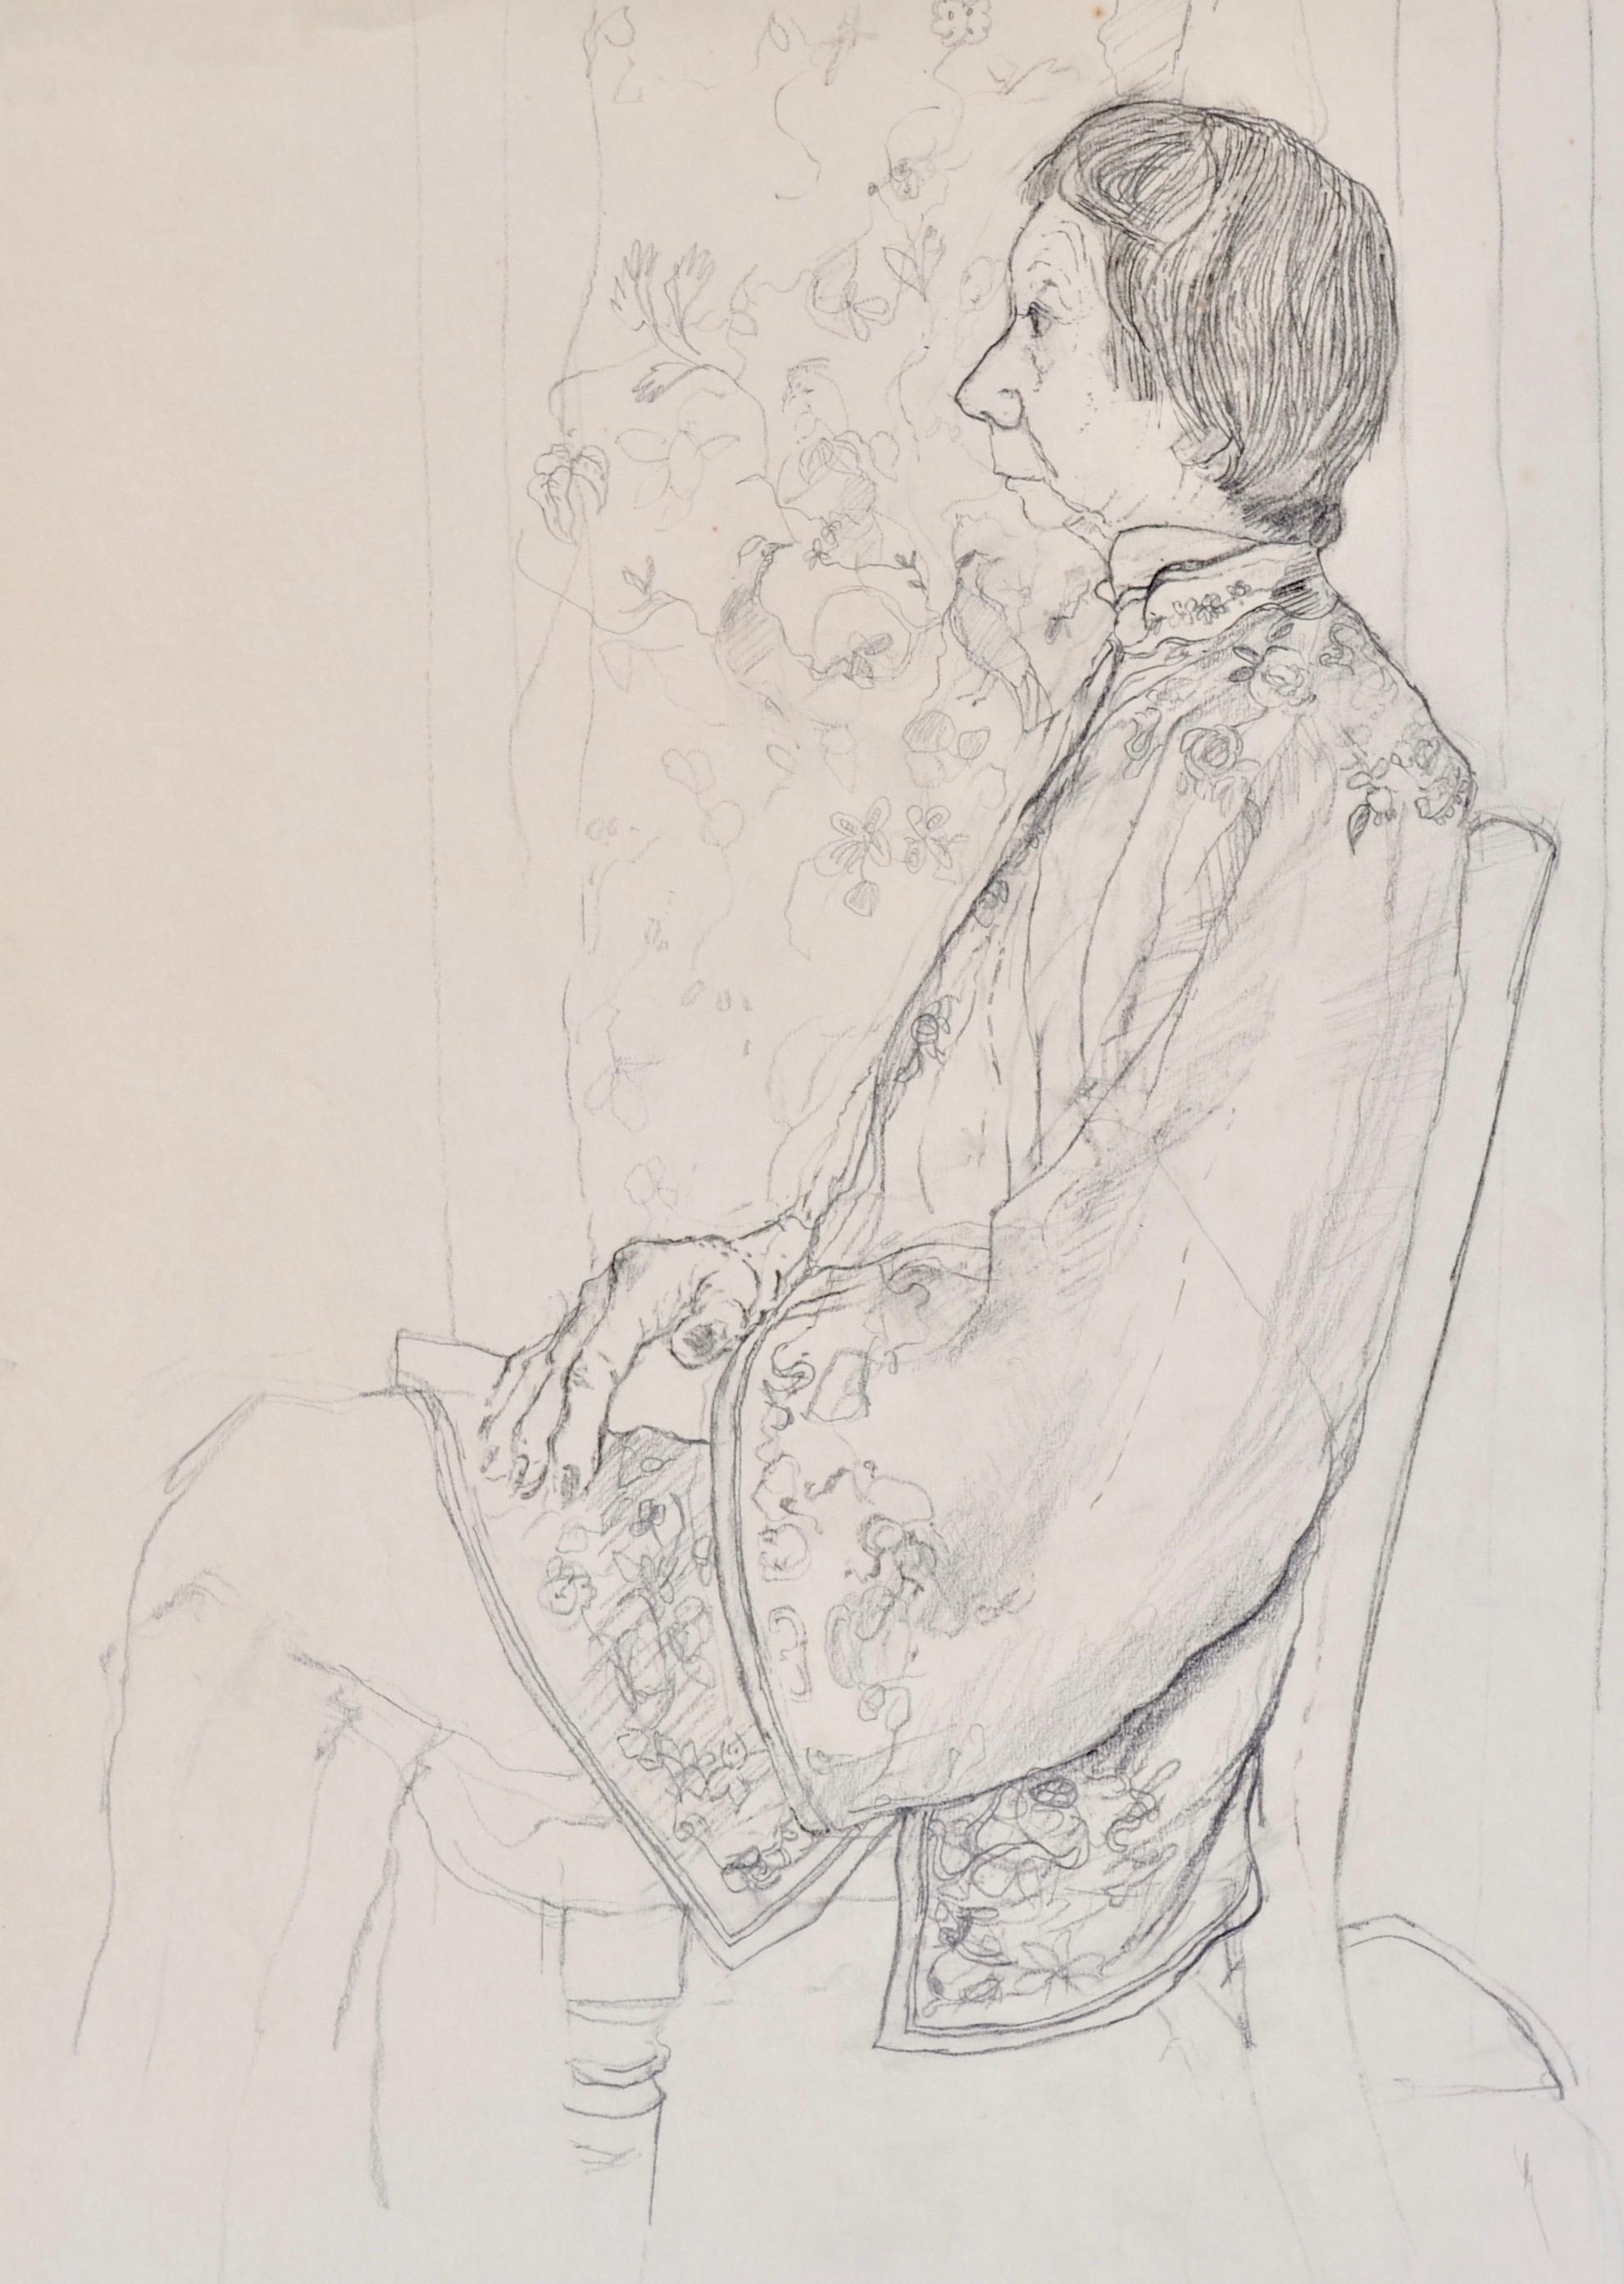 The Chinese Jacket - 20th Century British drawing of a Woman